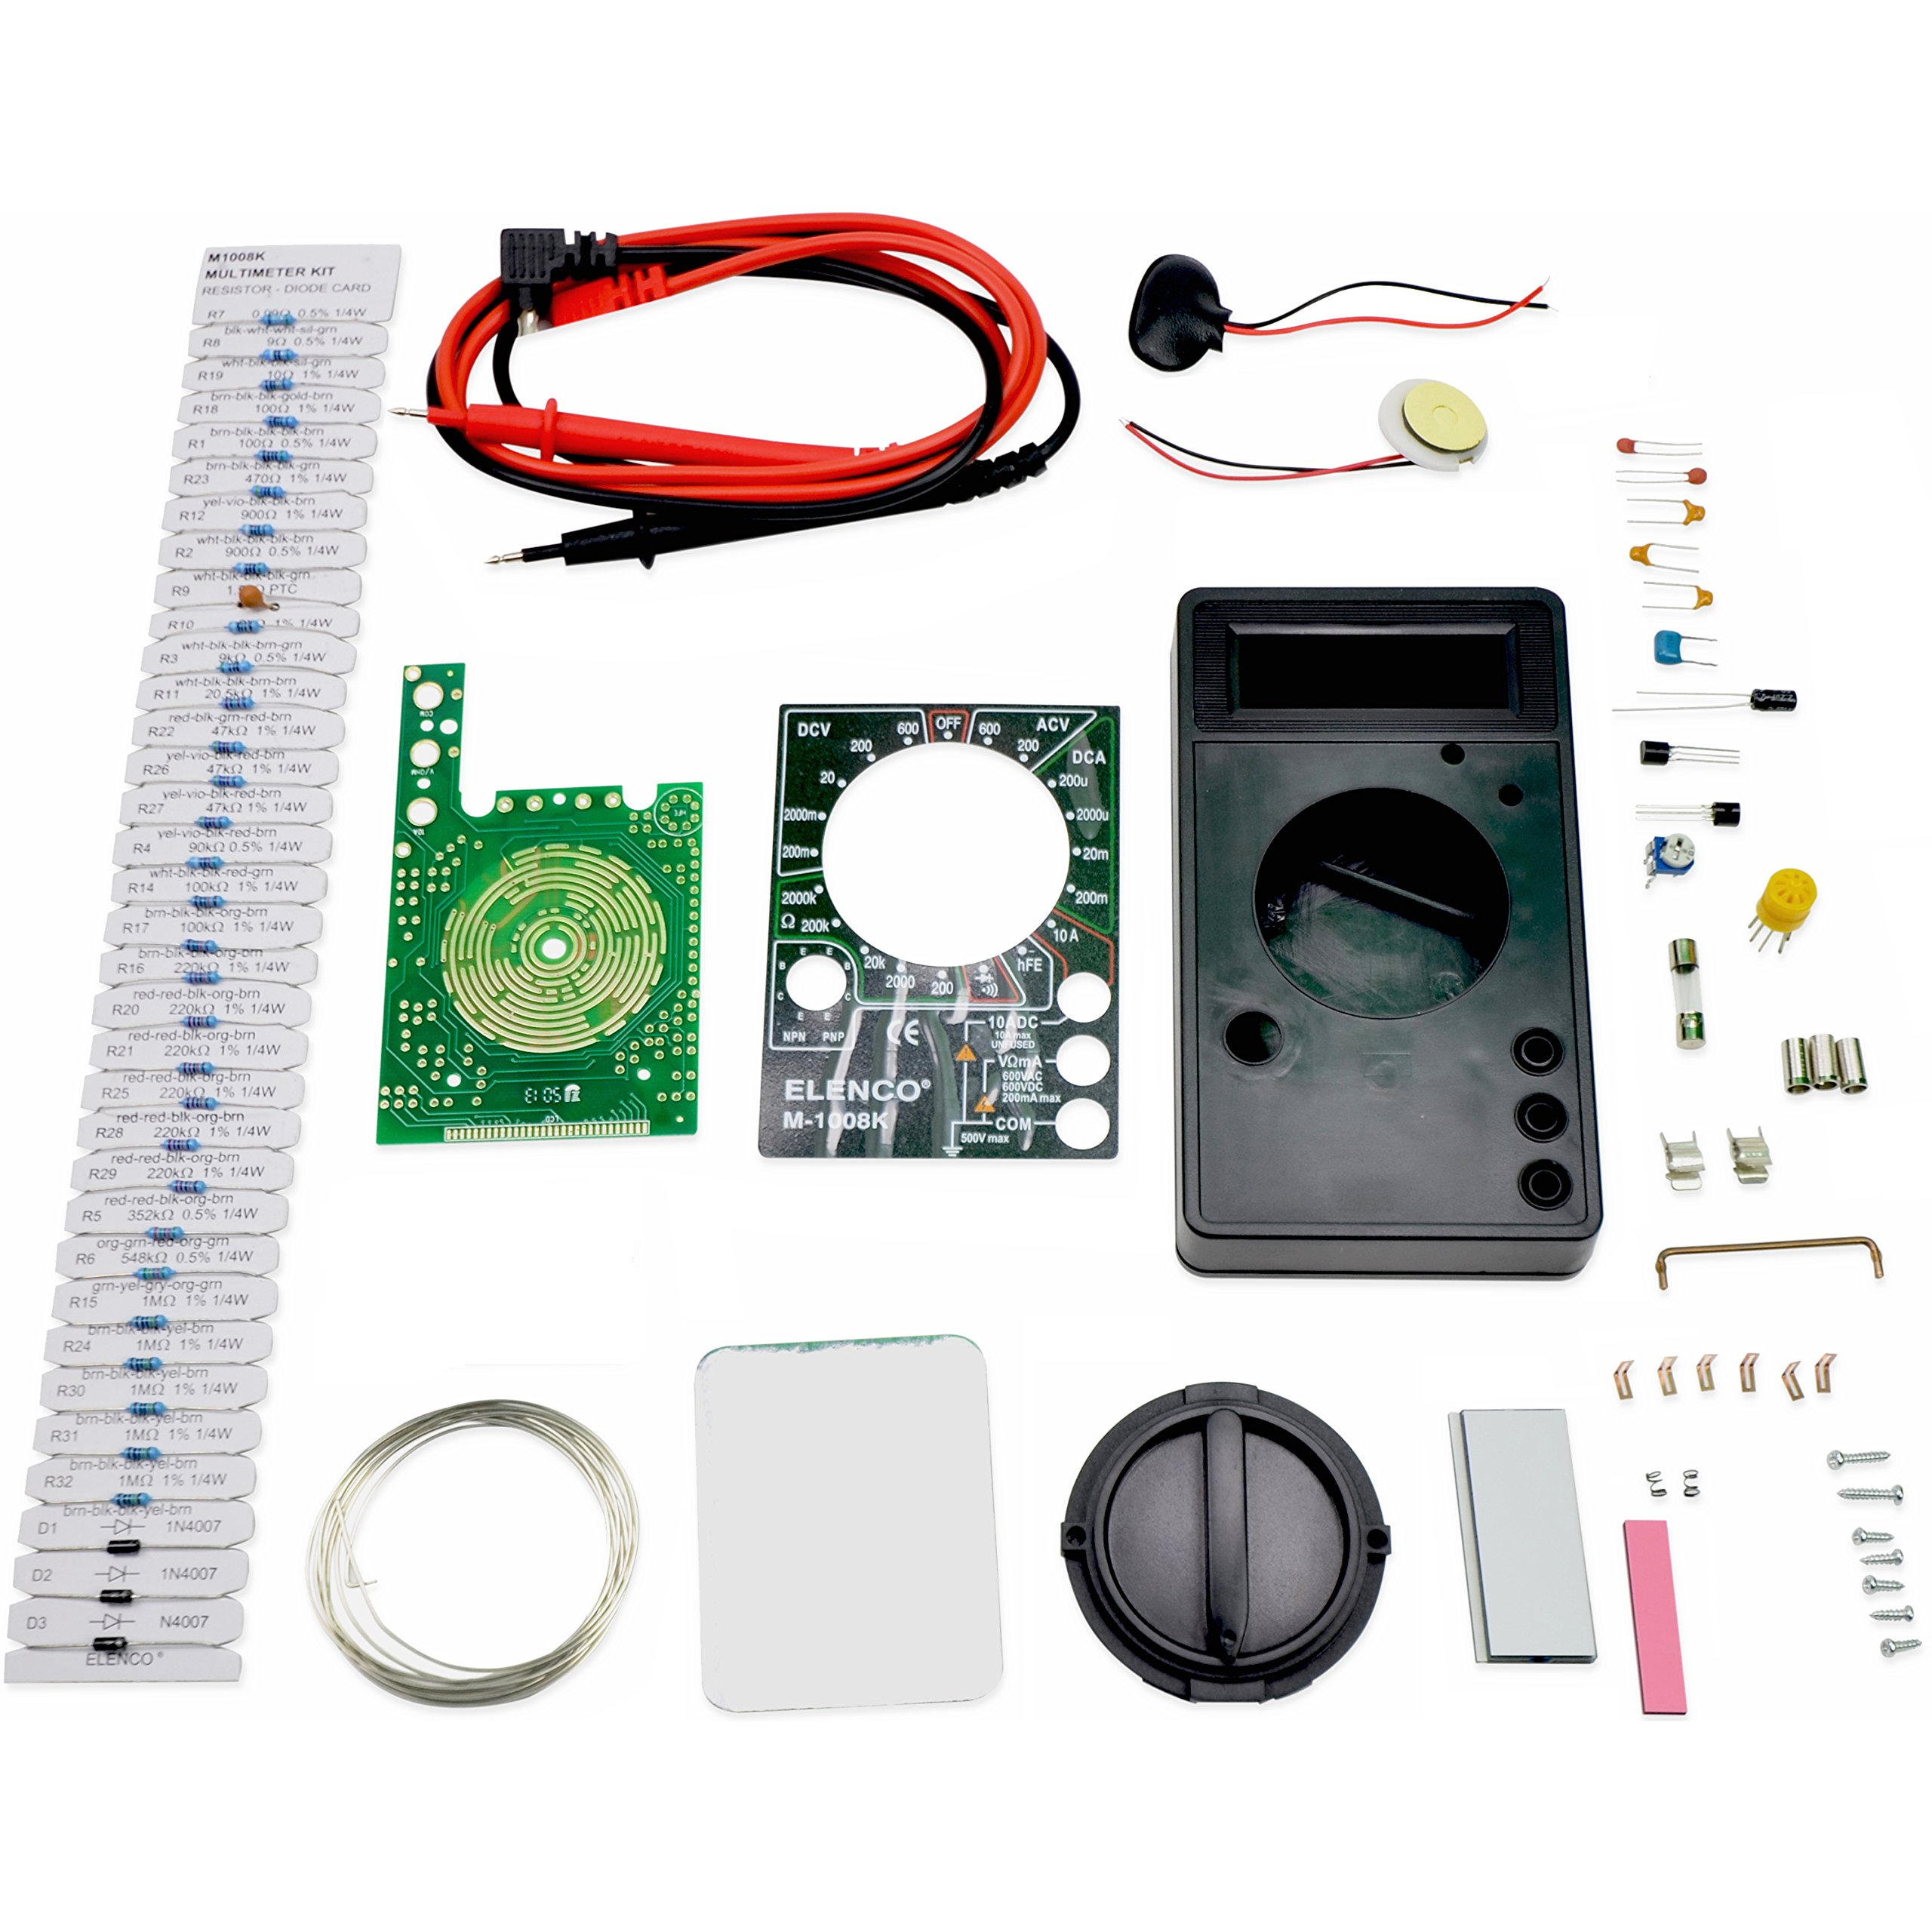 Elenco M-1008K - Digital Multimeter Solder Kit | Lead Free Solder | Great STEM Project | Soldering Required by Elenco (Image #2)